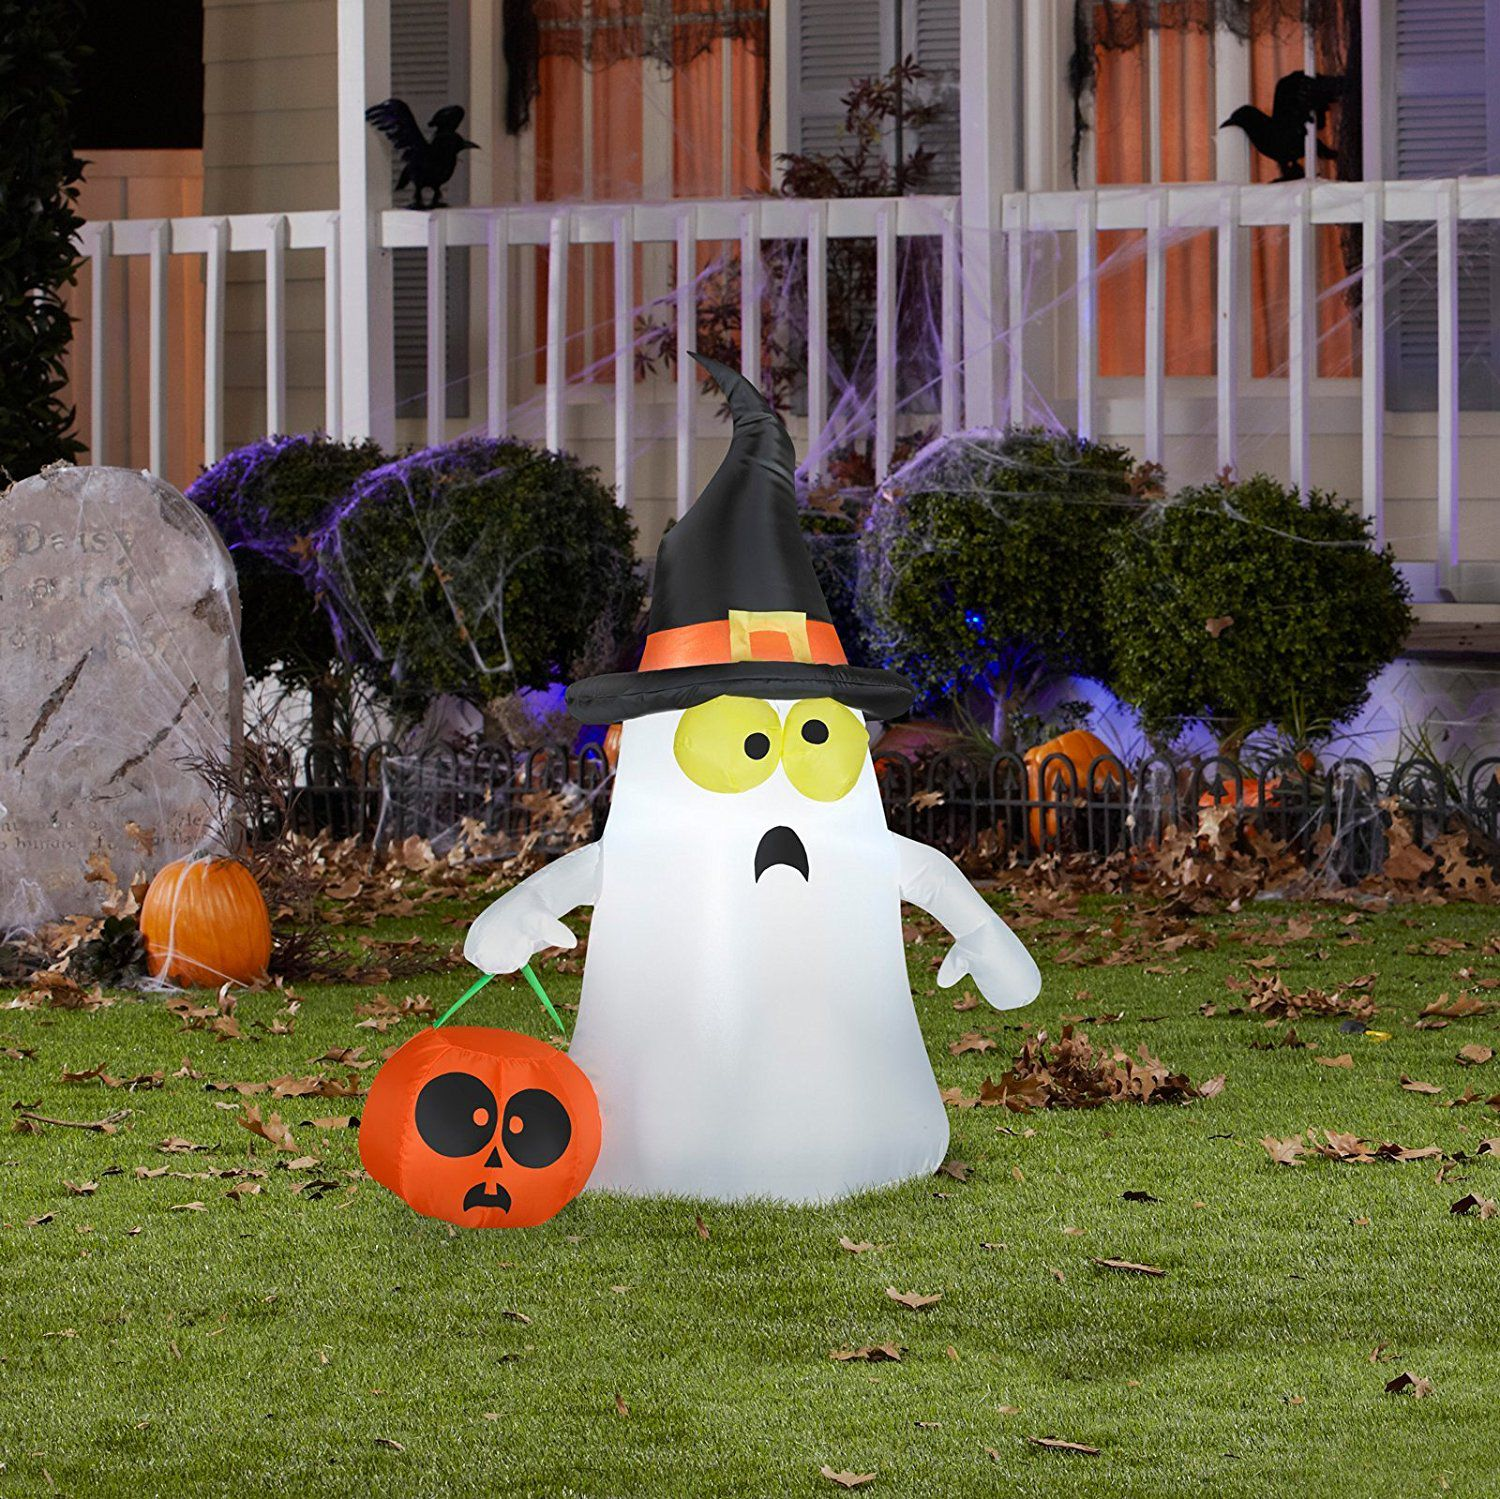 The 8 Best Outdoor Halloween Decorations to Buy in 2018 on Backyard Decorations Amazon id=42620